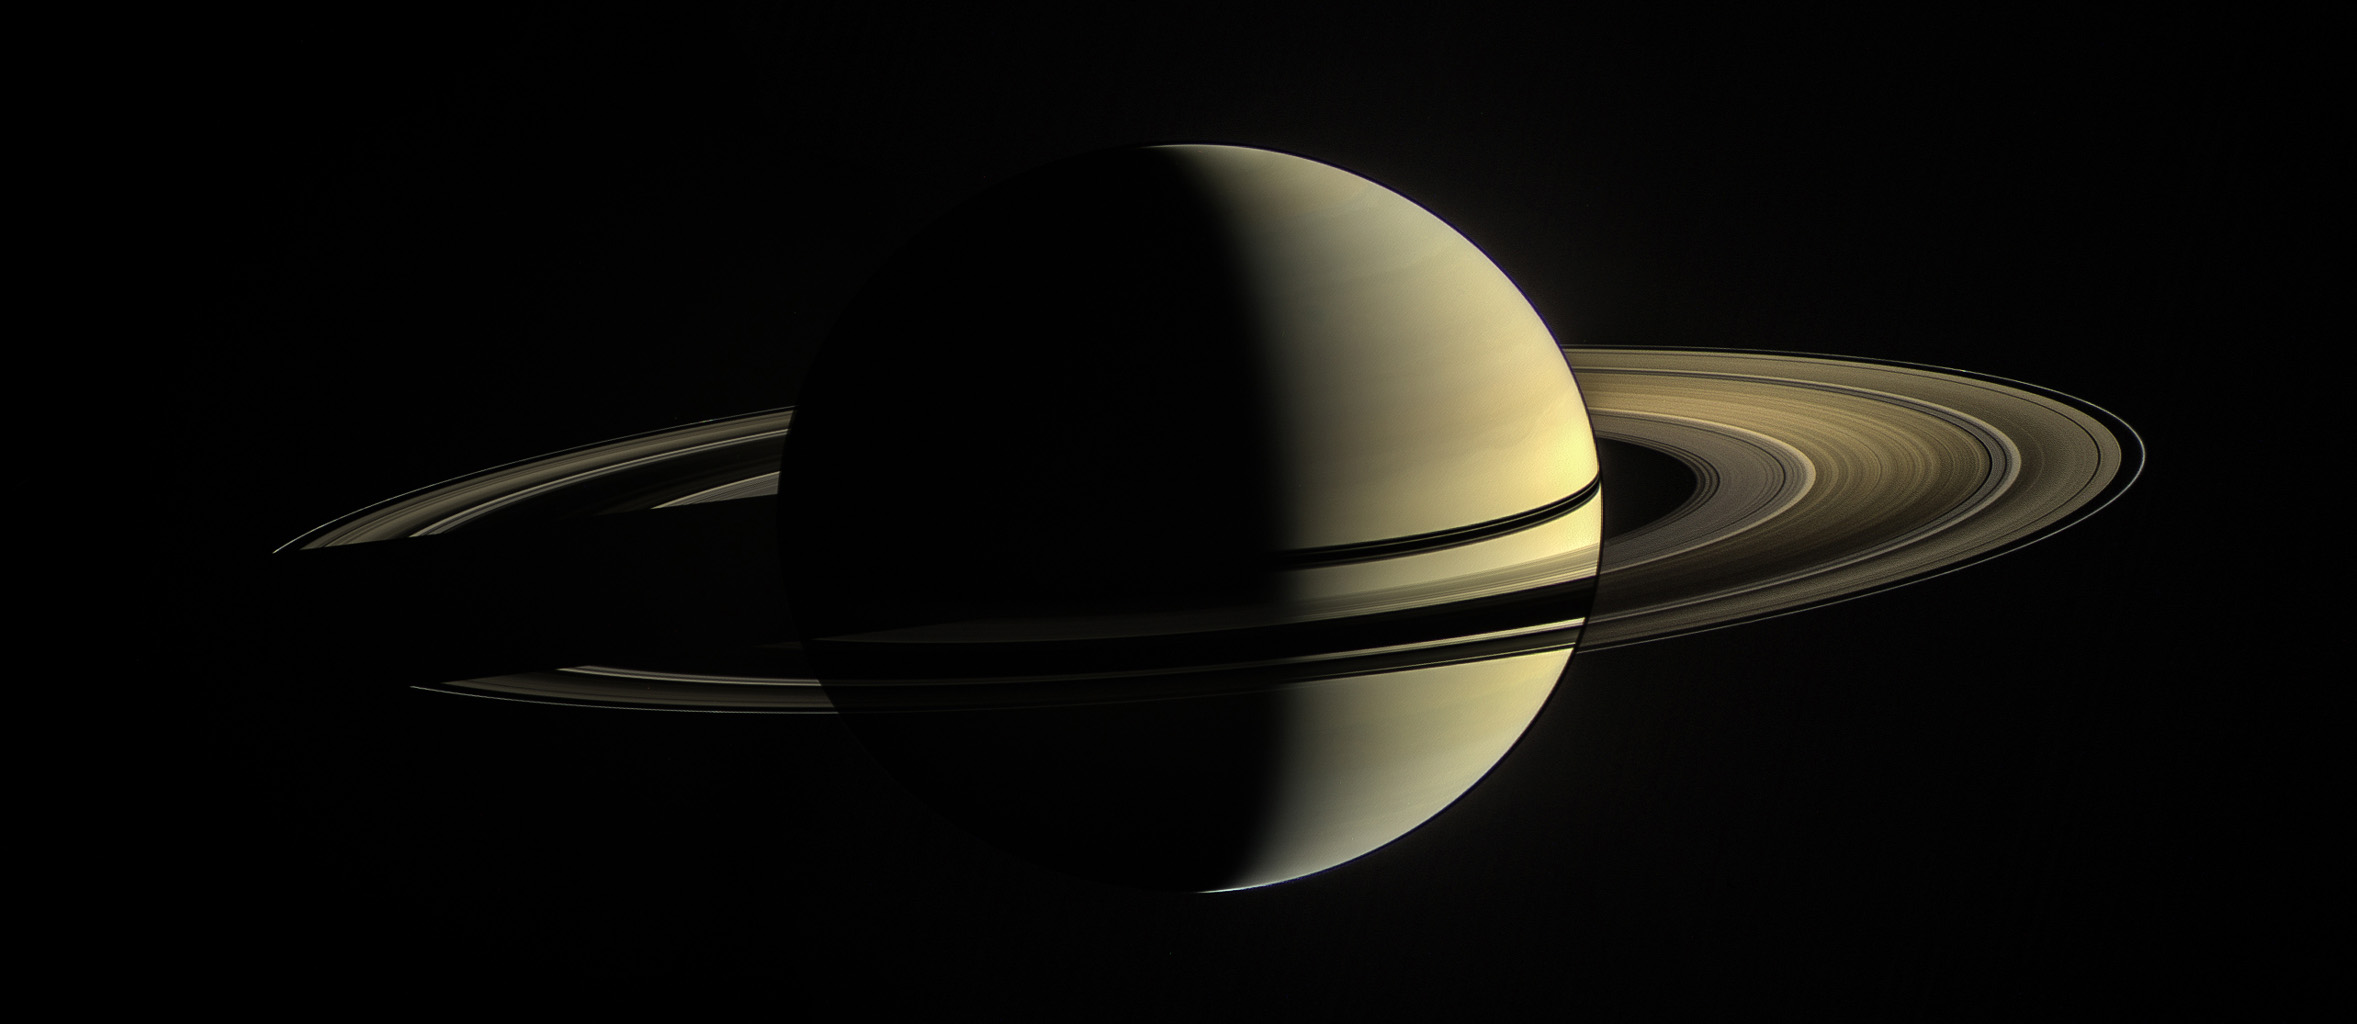 This image from NASA's Cassini spacecraft shows its view from orbit around Saturn on Jan. 2, 2010. The rings on the night side of the planet have been brightened significantly to more clearly reveal their features.